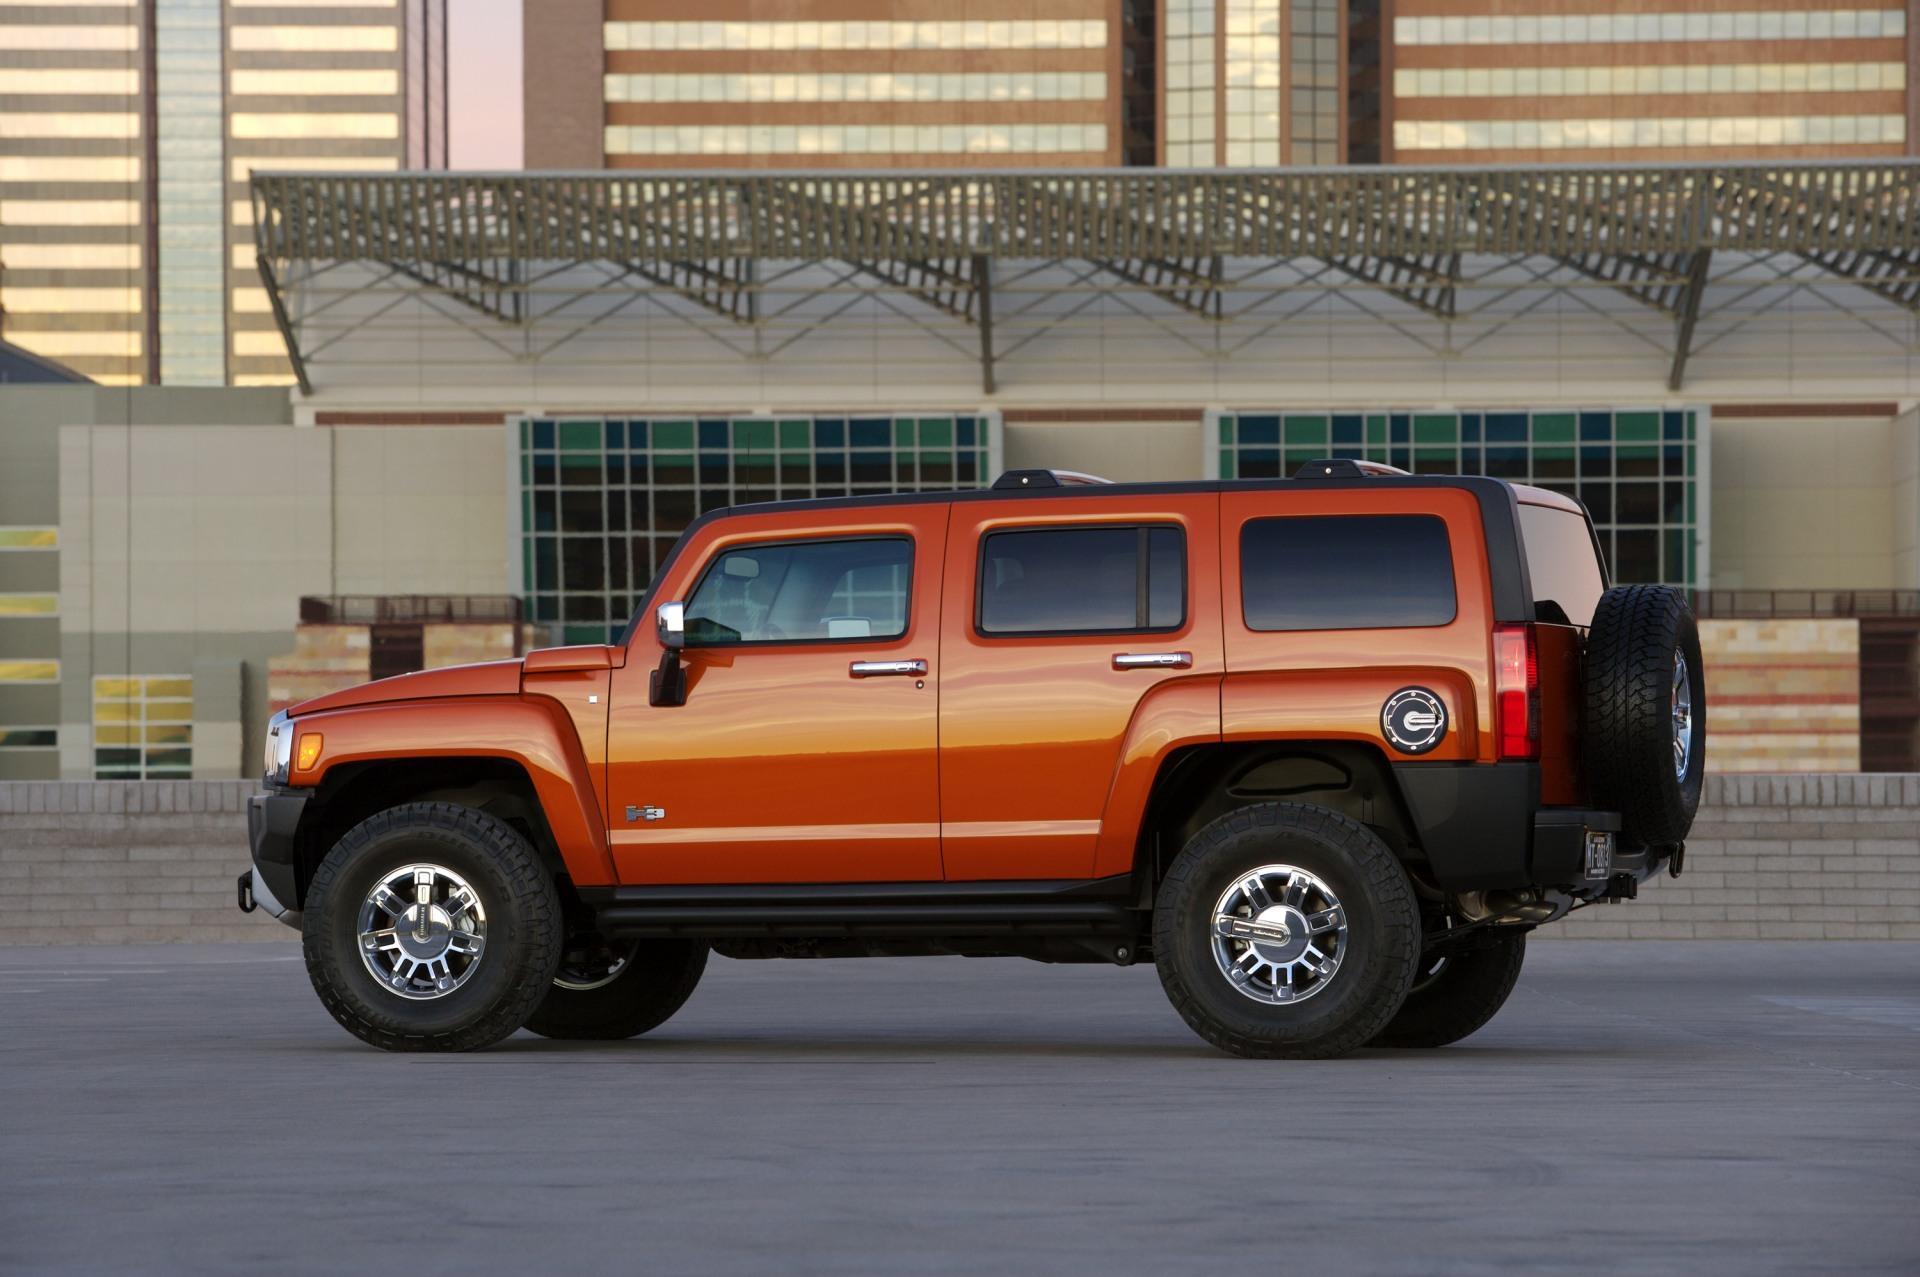 Which Is The Costliest Car In The World >> 2010 Hummer H3 News and Information | conceptcarz.com